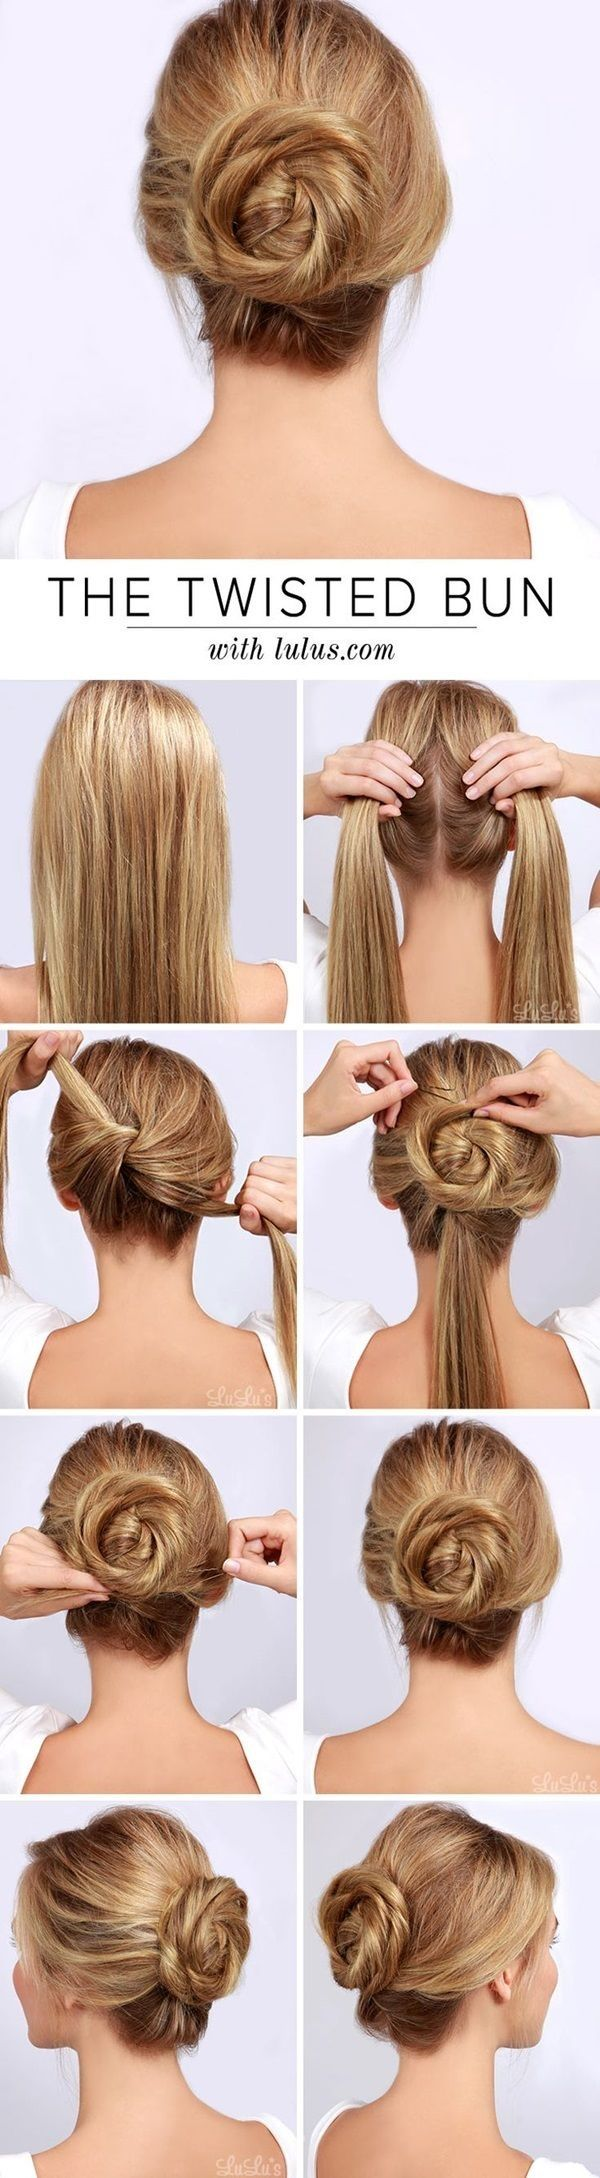 Very Easy Hairstyles to do in Just Minutes or Less Hair